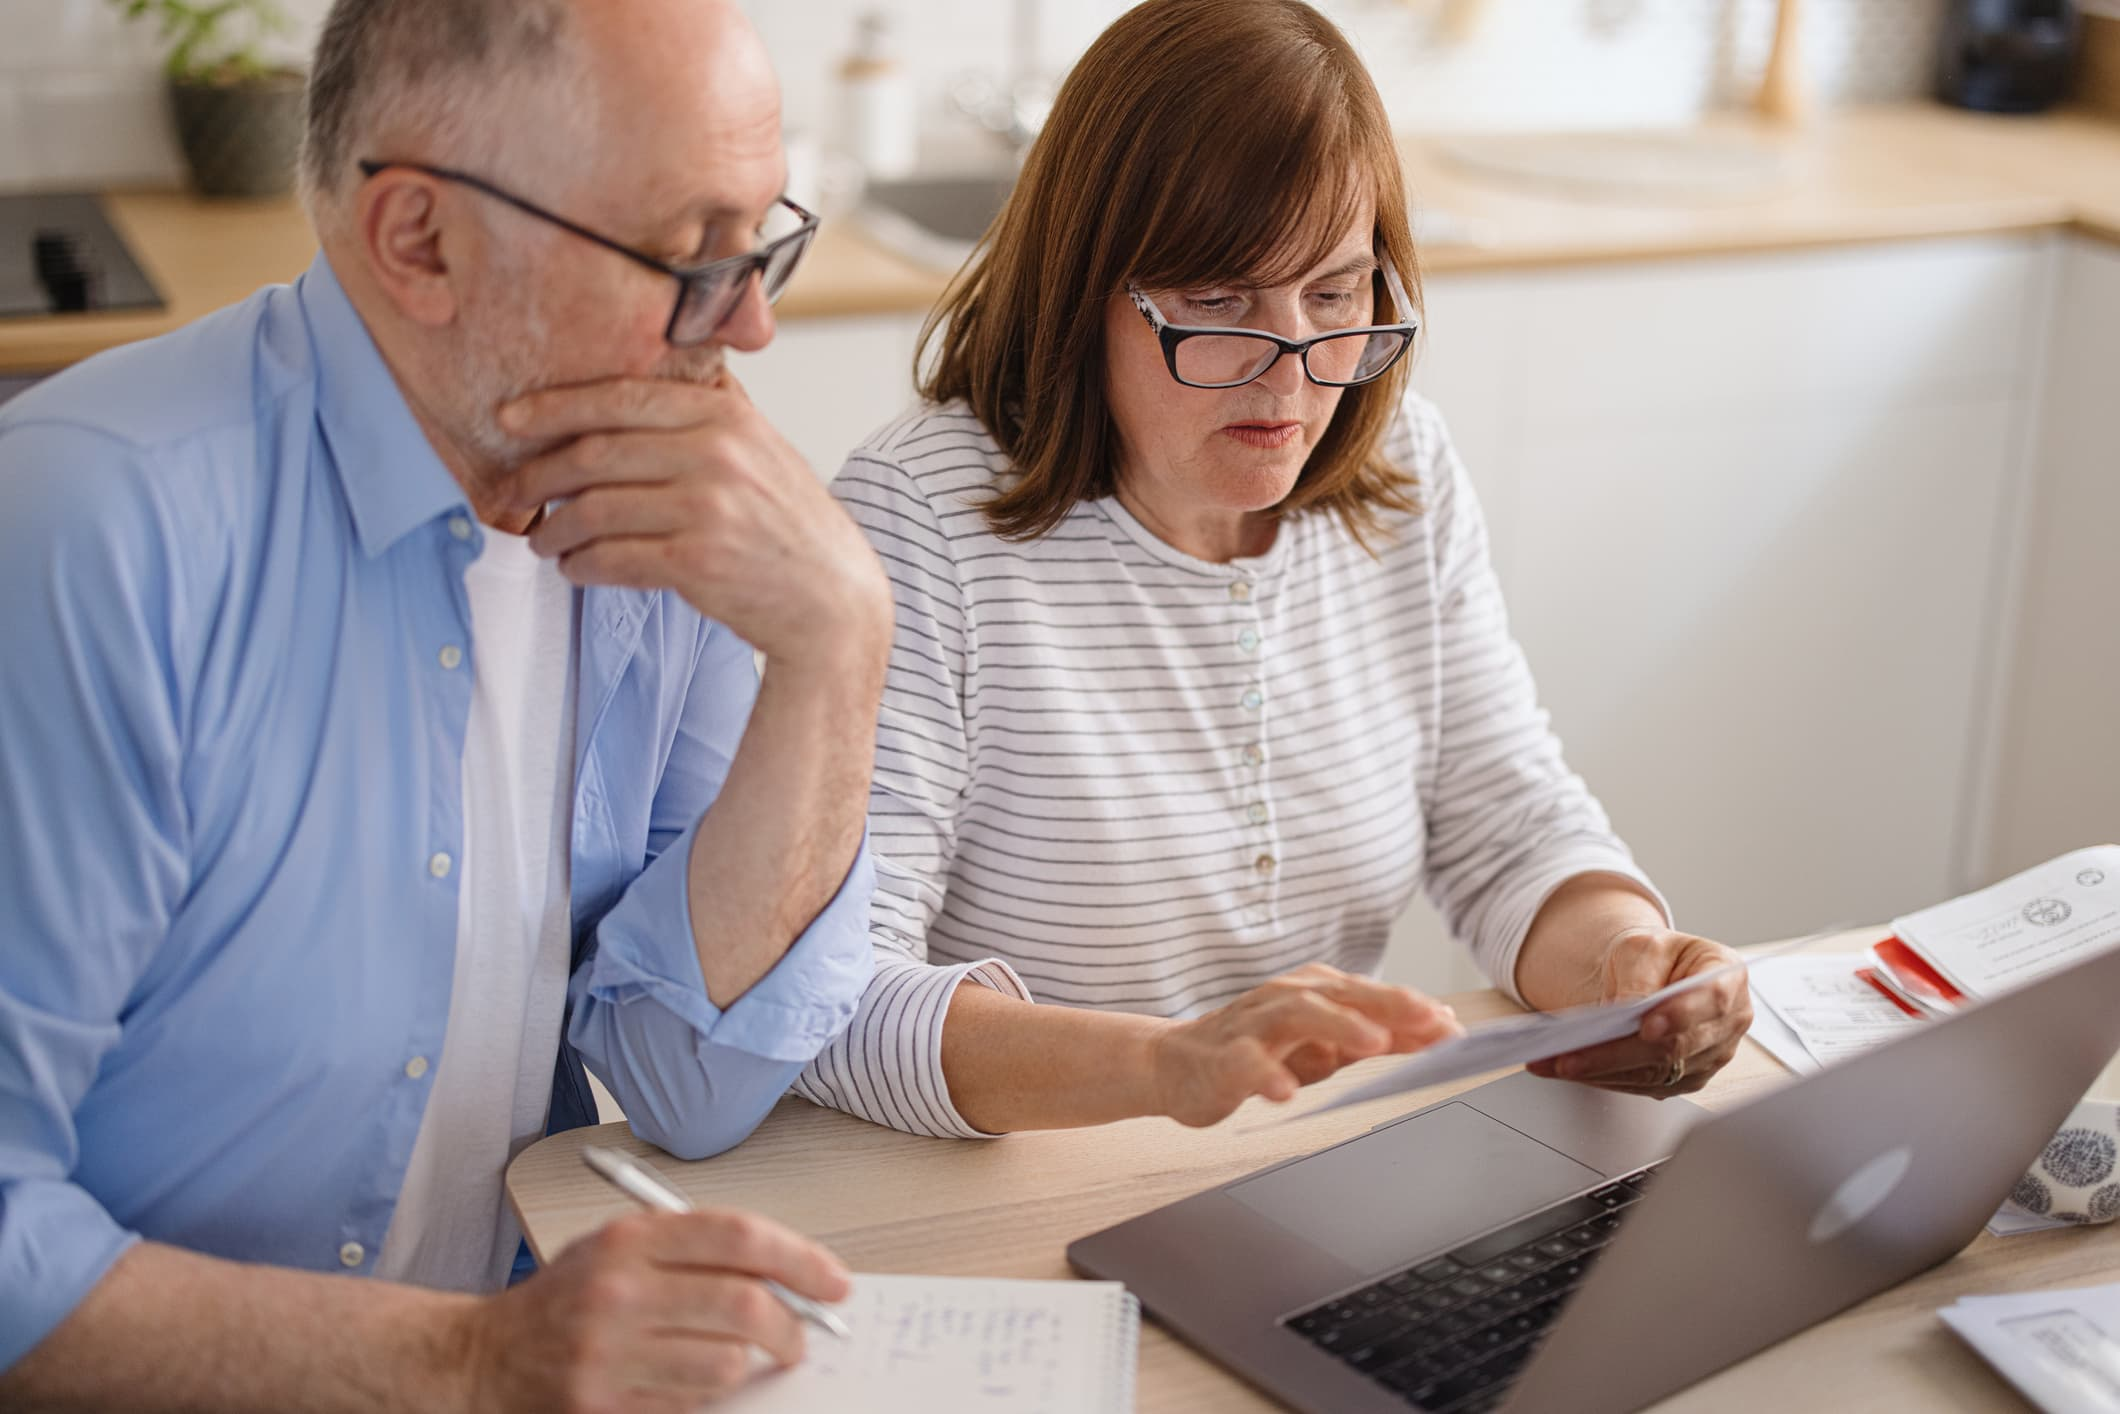 36% of Americans say they don't have enough to retire, according to results